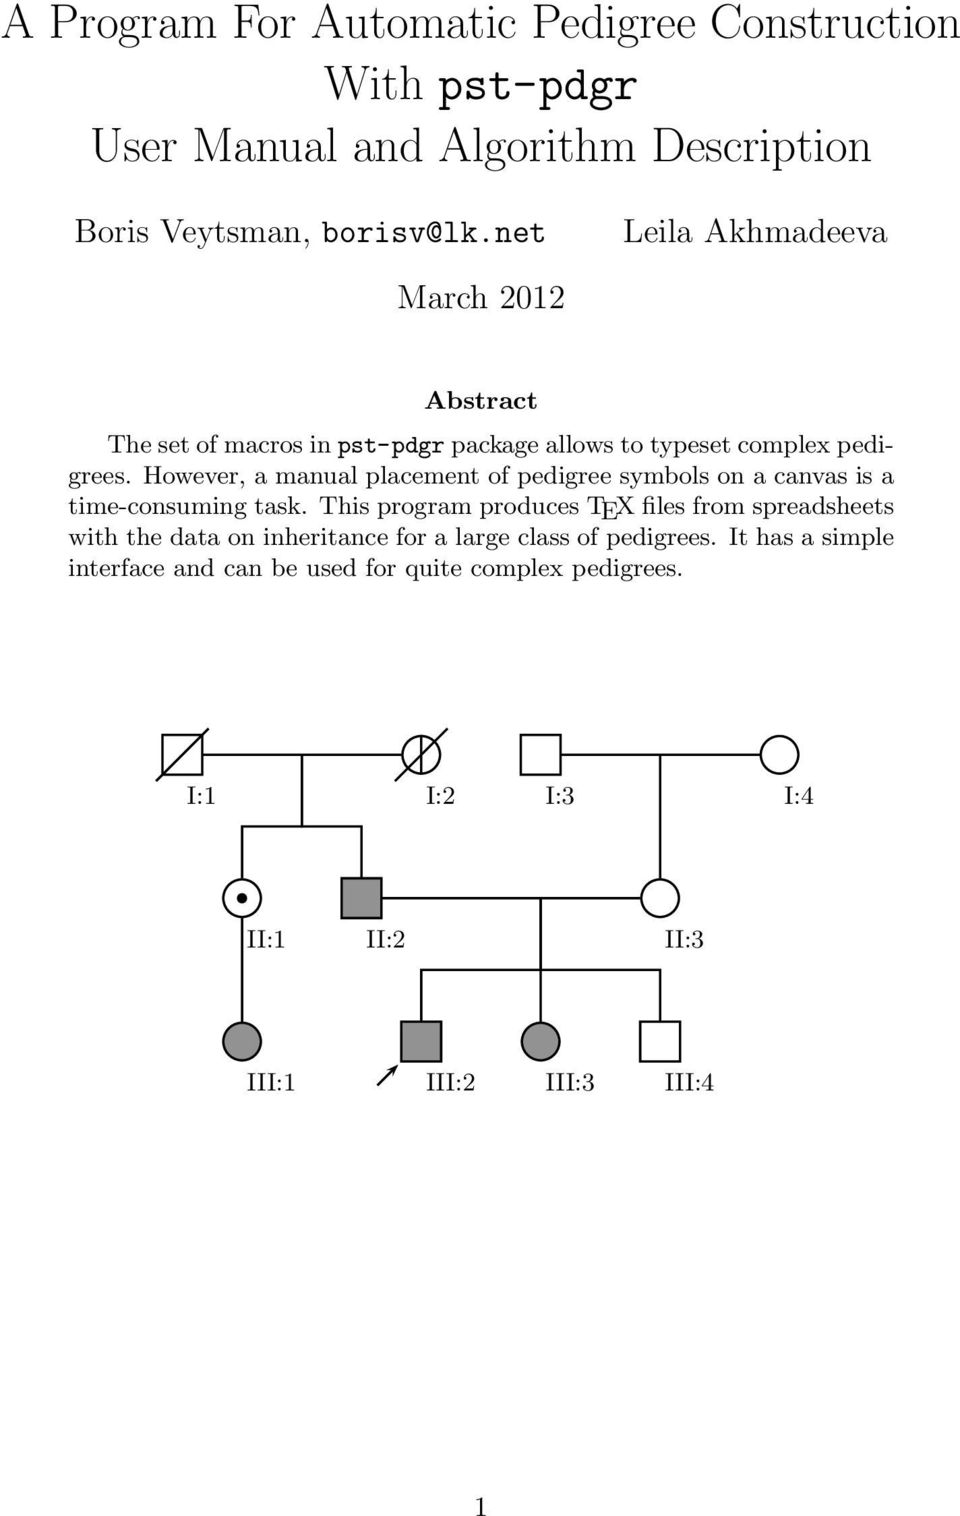 However, a manual placement of pedigree symbols on a canvas is a time-consuming task.